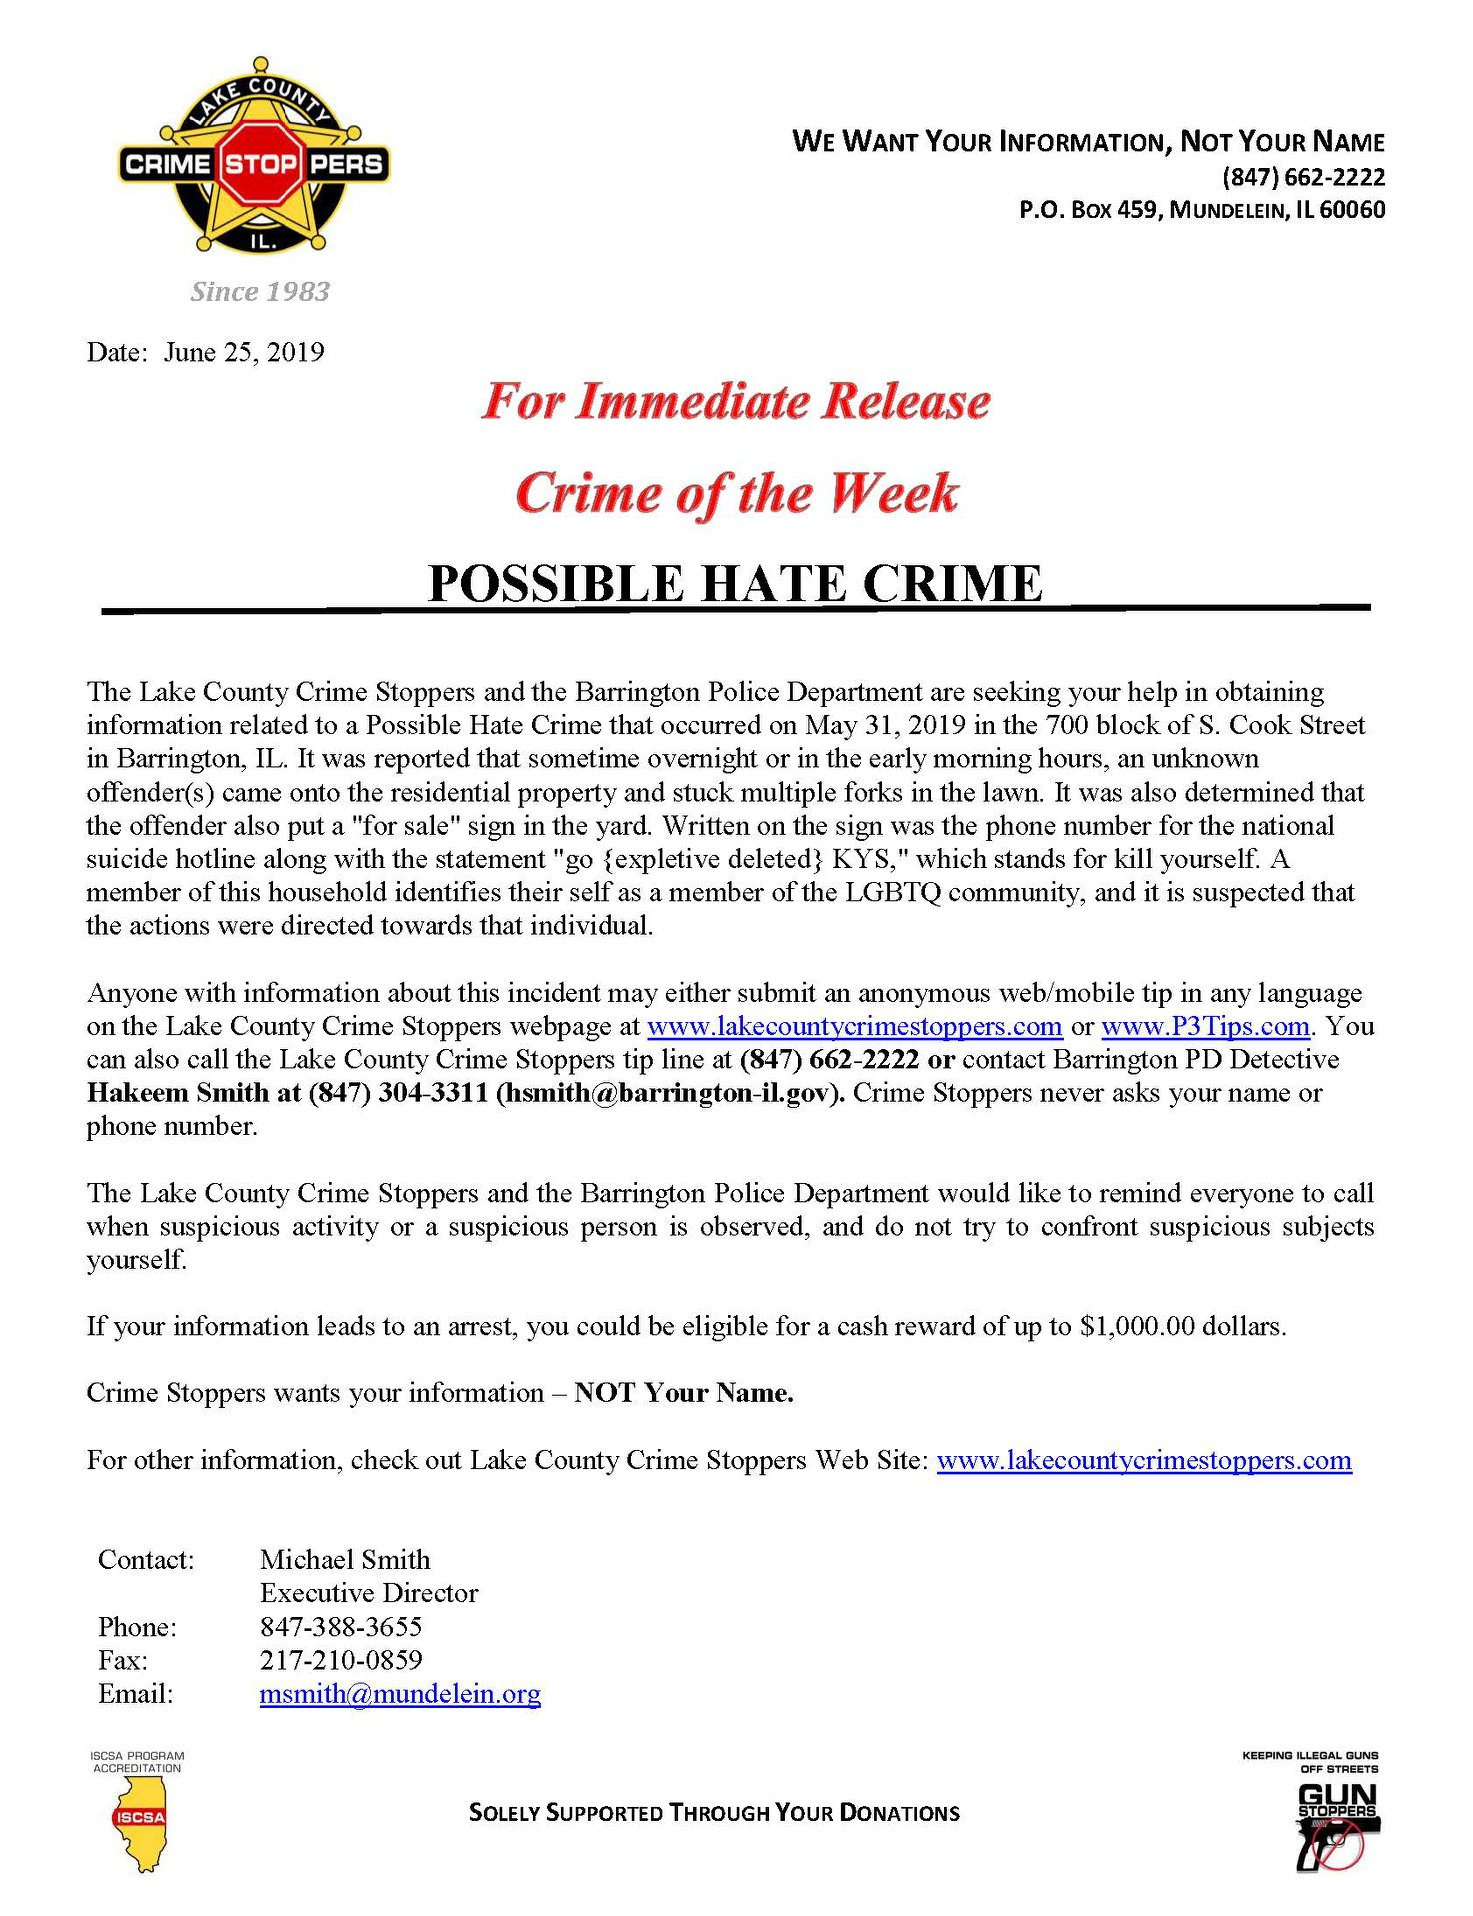 Lake County Crime Stoppers & Barrington Police Seek Tips in